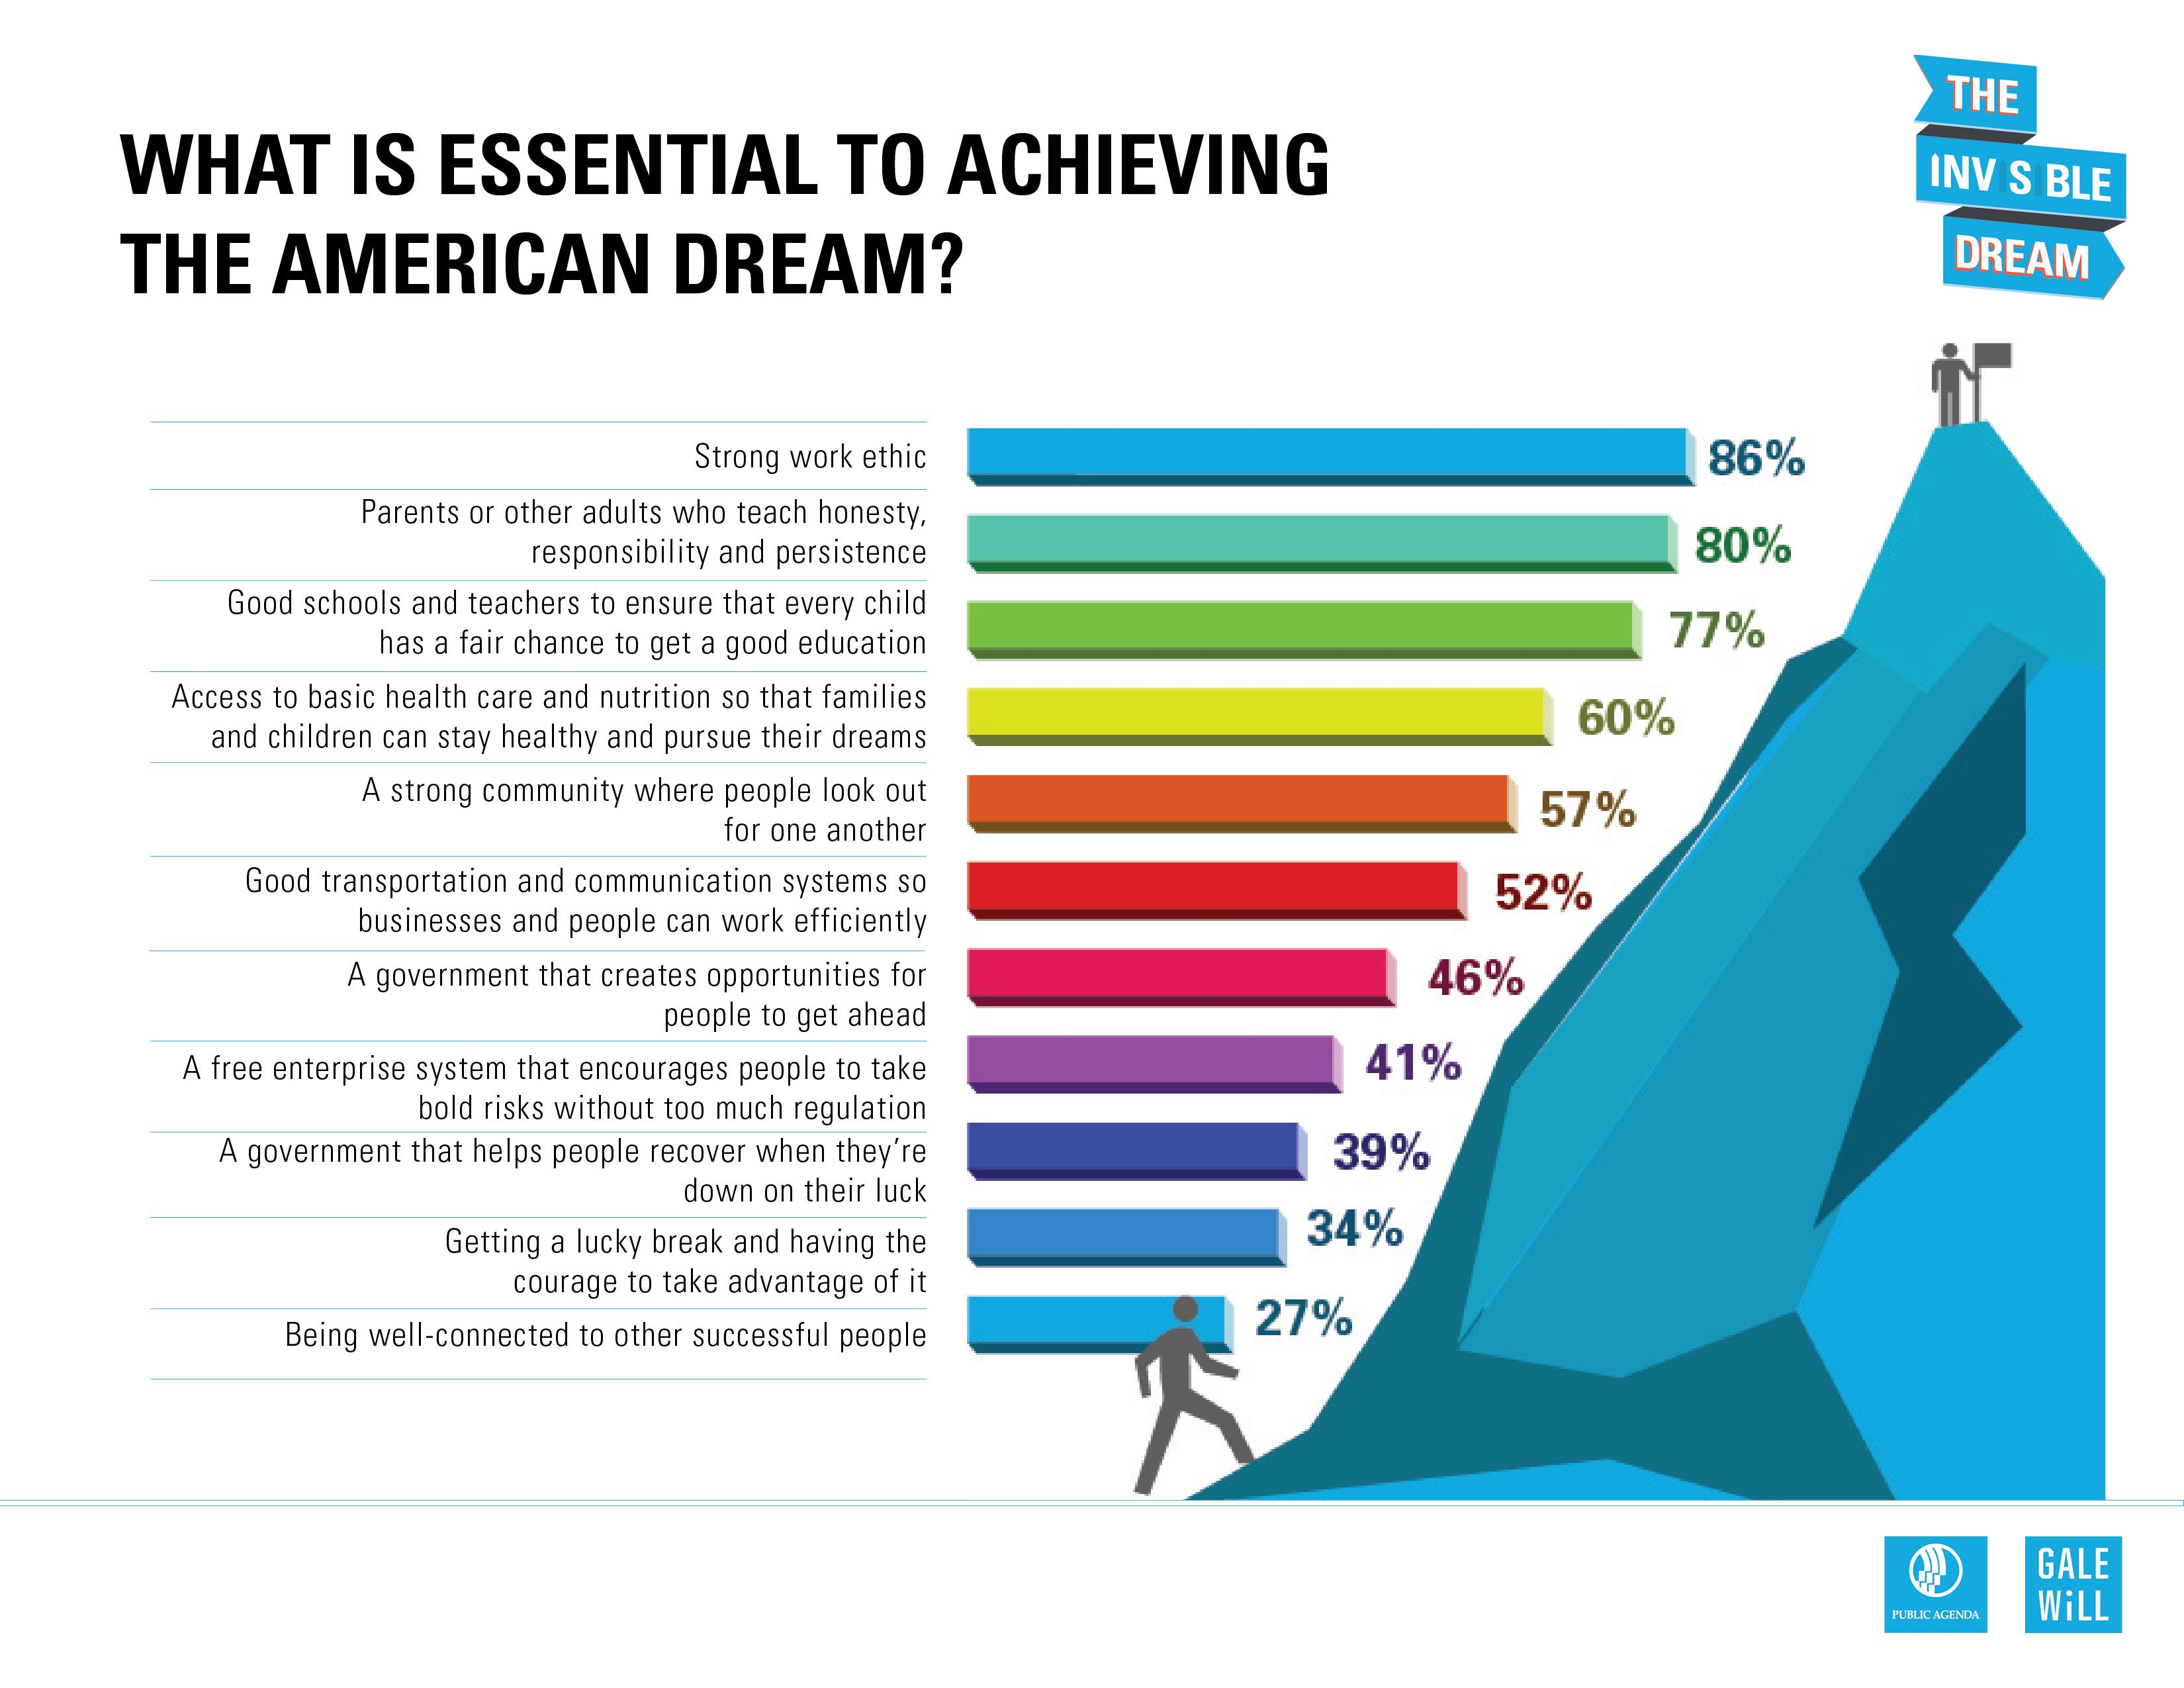 English Composition Essay What Is Essential To Achieving The American Dream Most Americans Agree A  Strong Worth Ethic Values And Good Schools Are The Most Important Essays In English also First Day Of High School Essay What Is Essential To Achieving The American Dream Most Americans  Health Care Reform Essay